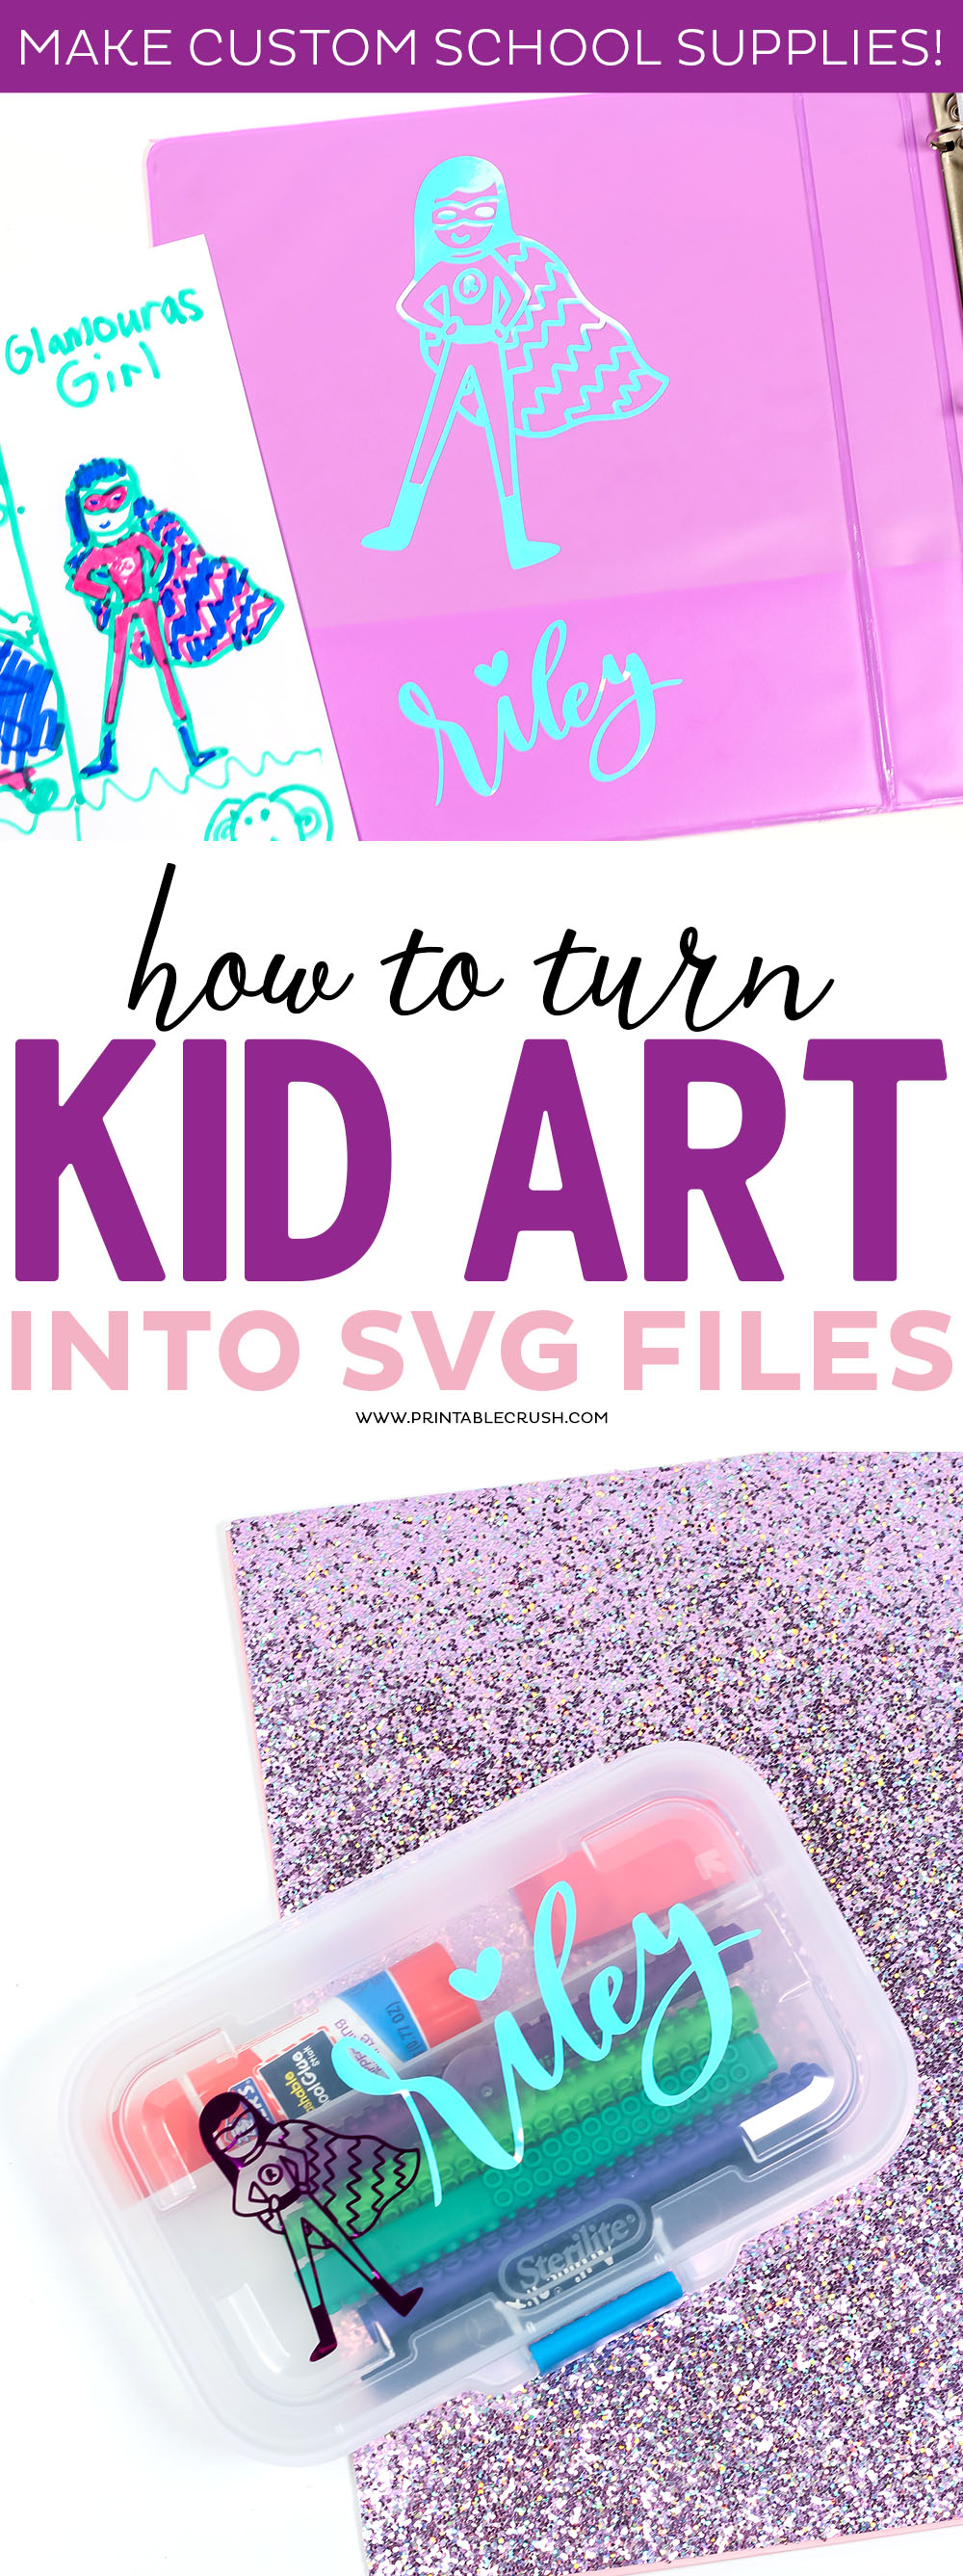 How to Turn Kid Art into SVG Files - Printable Crush